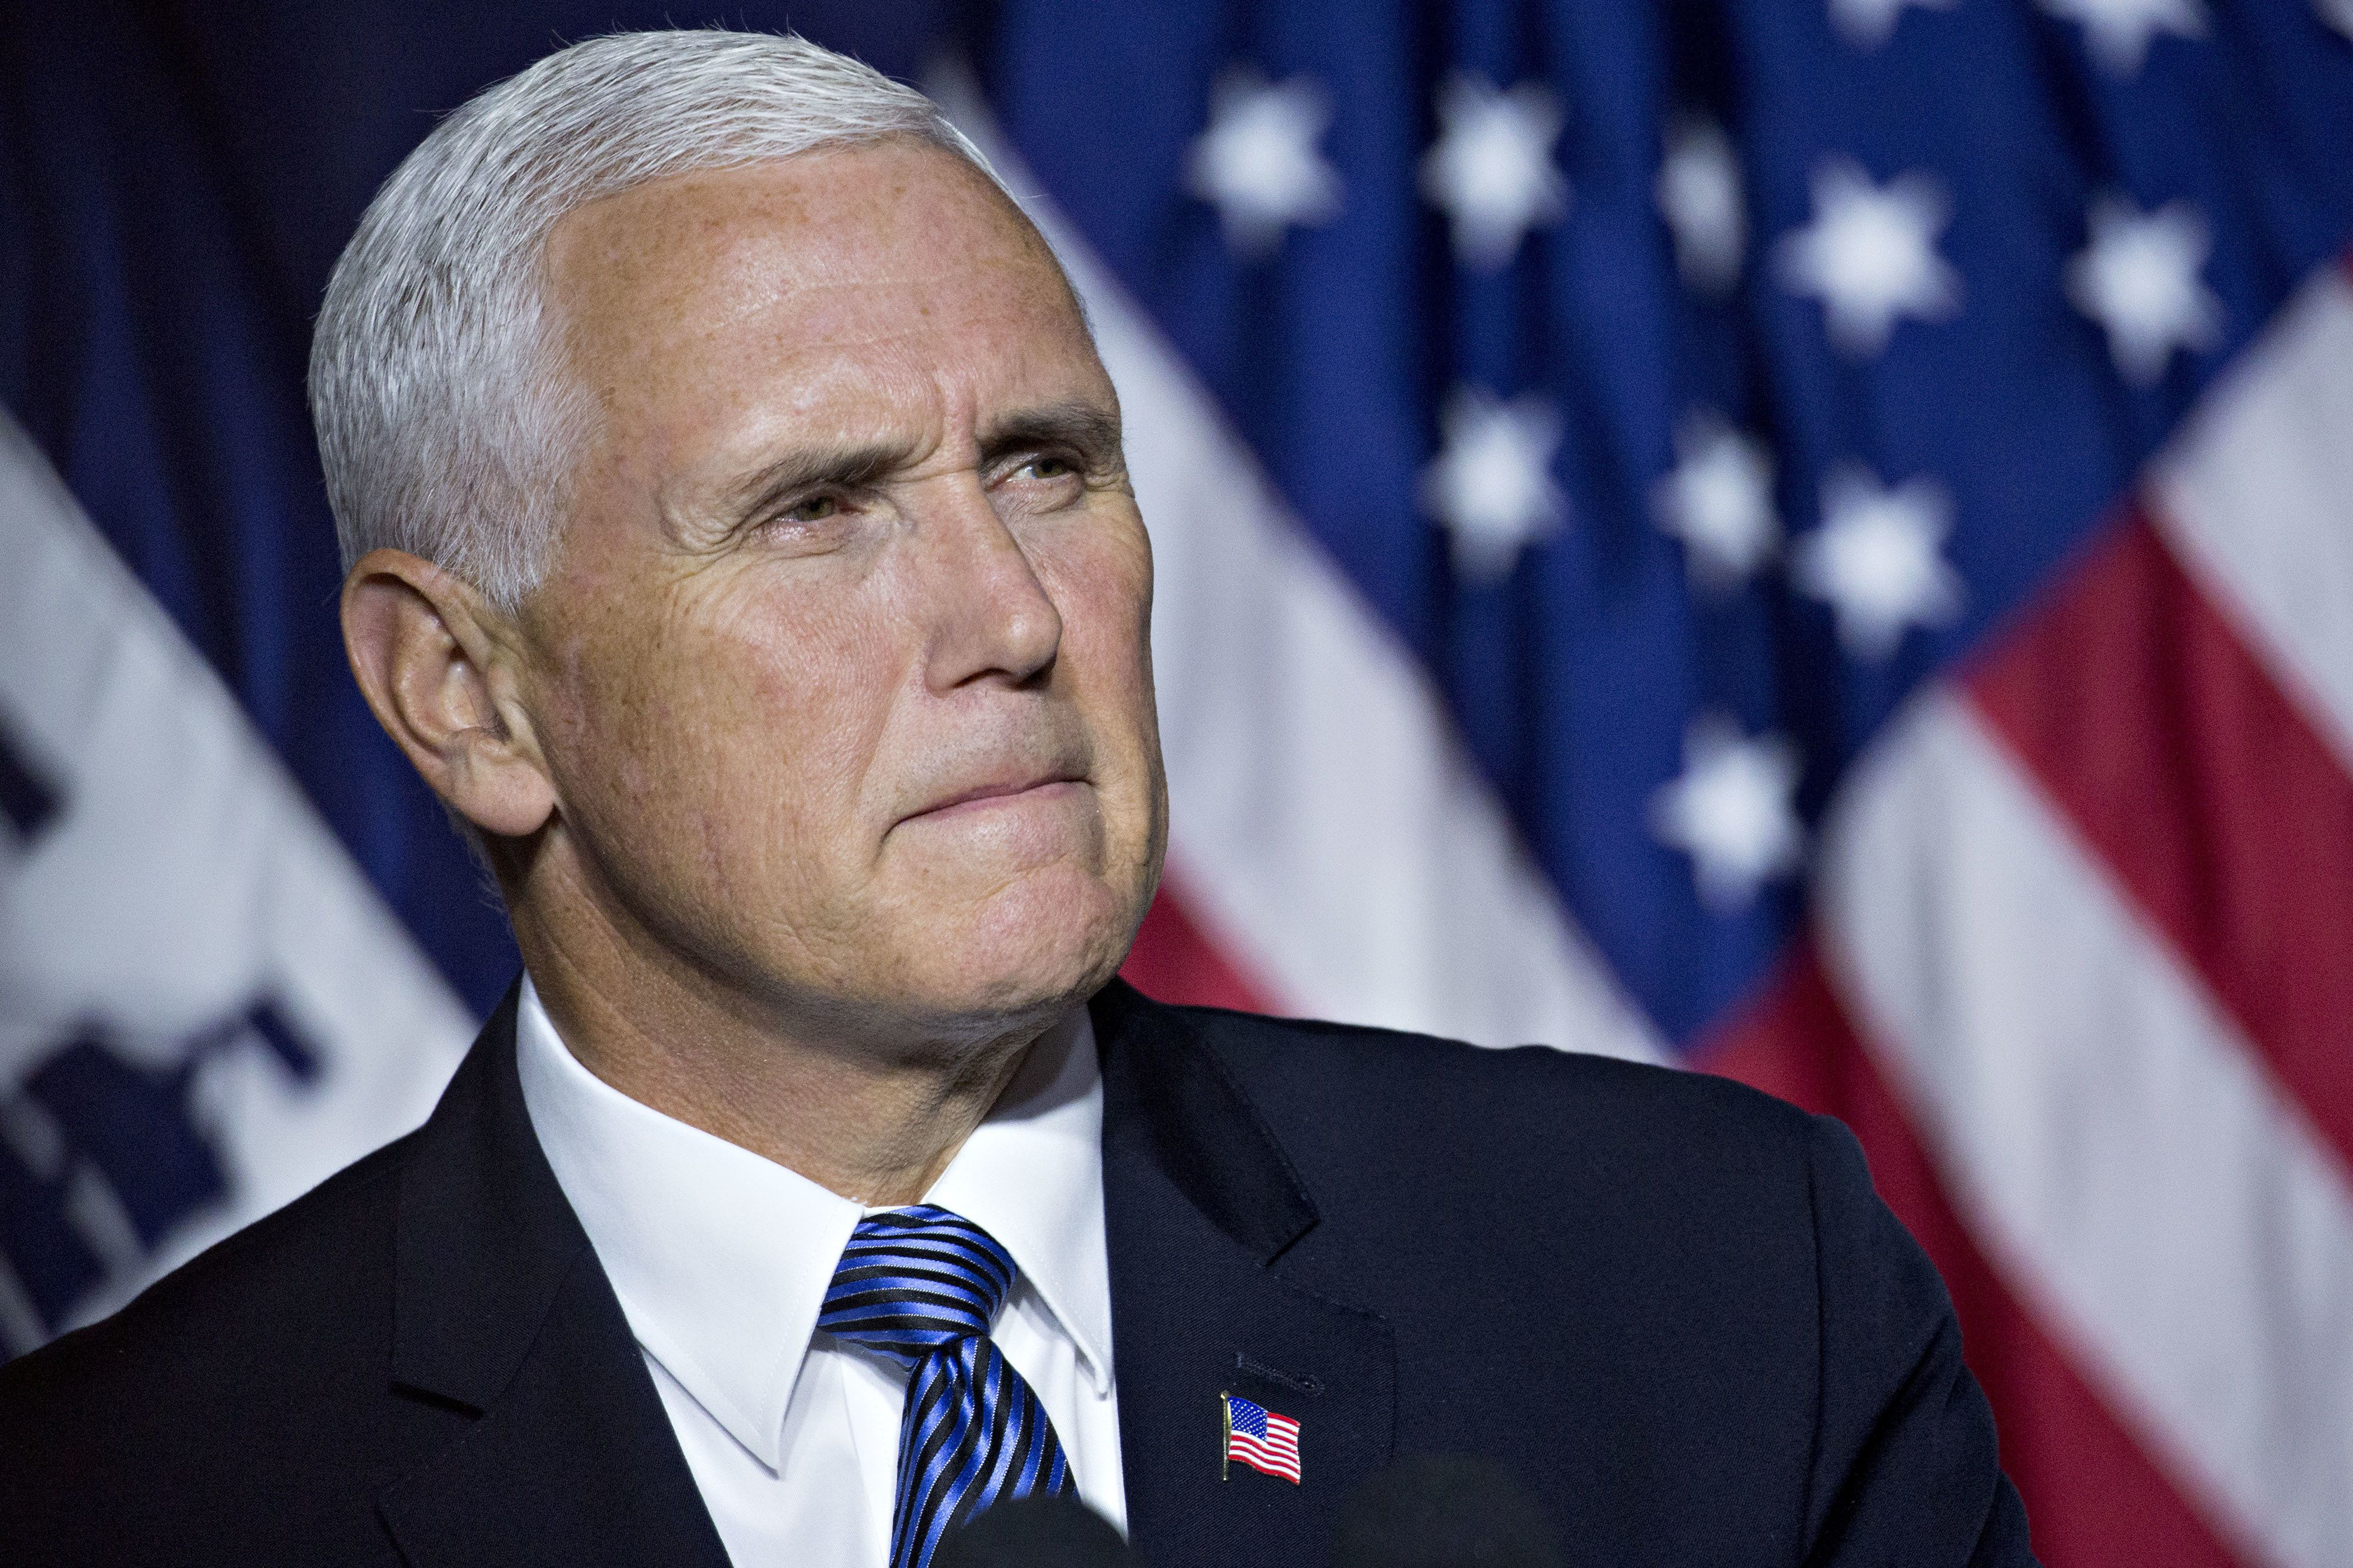 Vice President Mike Pence defended President Donald Trump after the barrage of bipartisan criticism sparked by Trump's commen